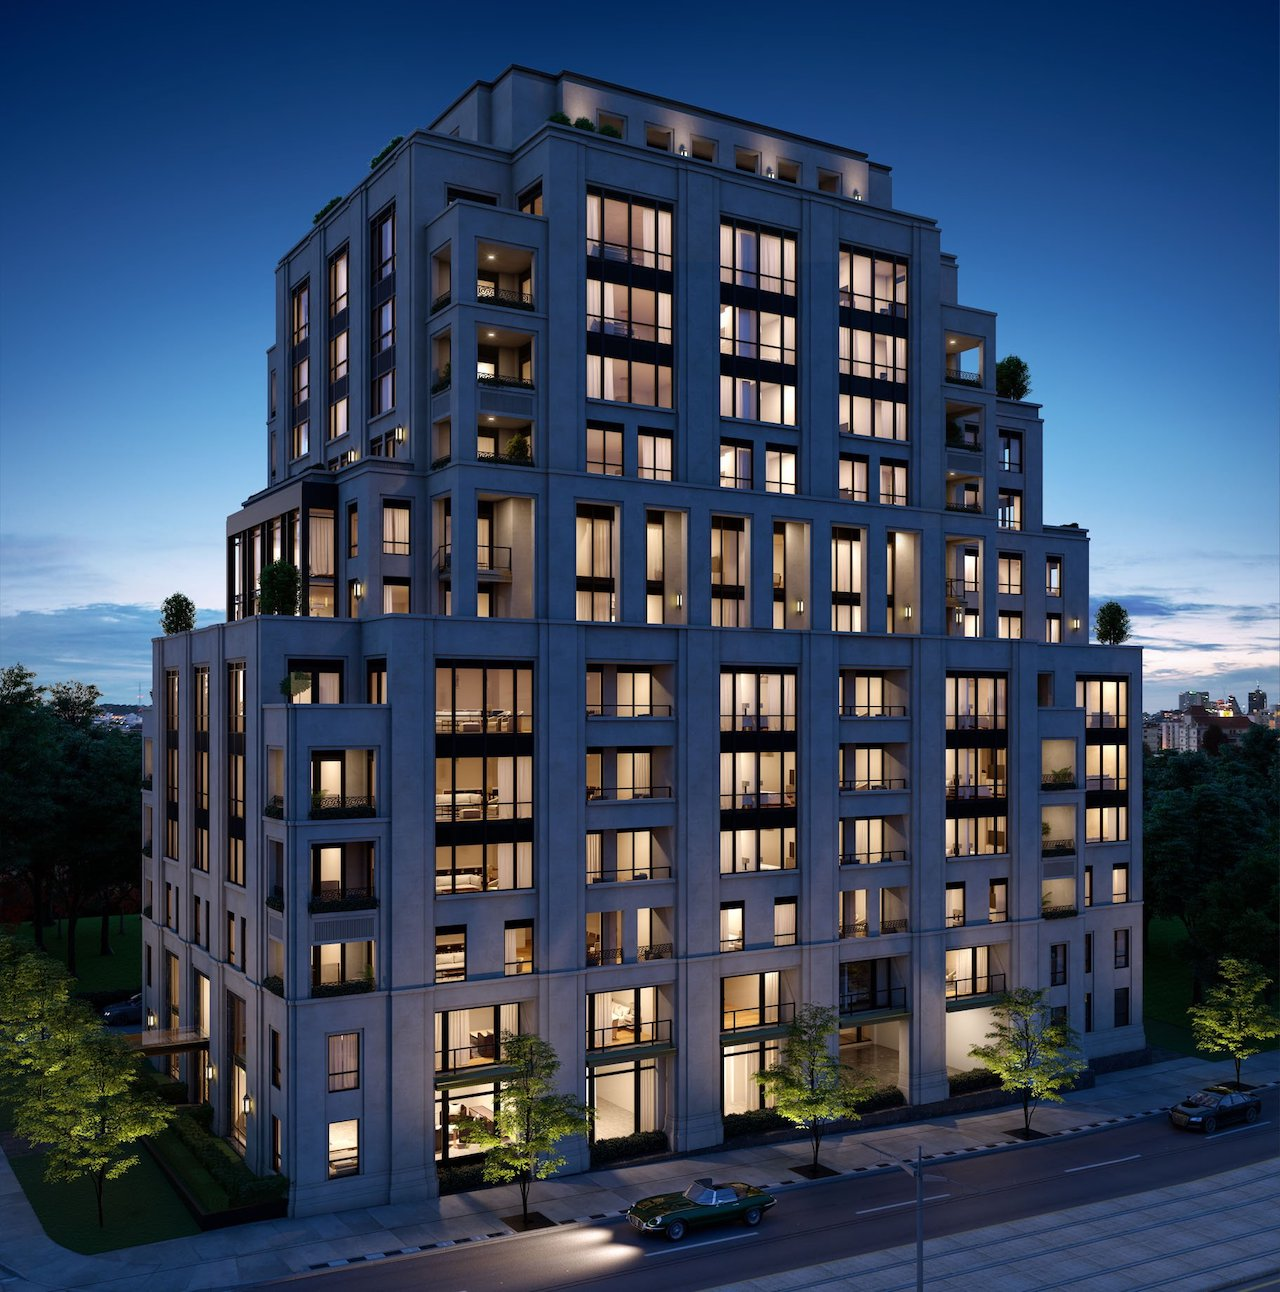 Exterior rendering of One Forest Hill Condos at night.